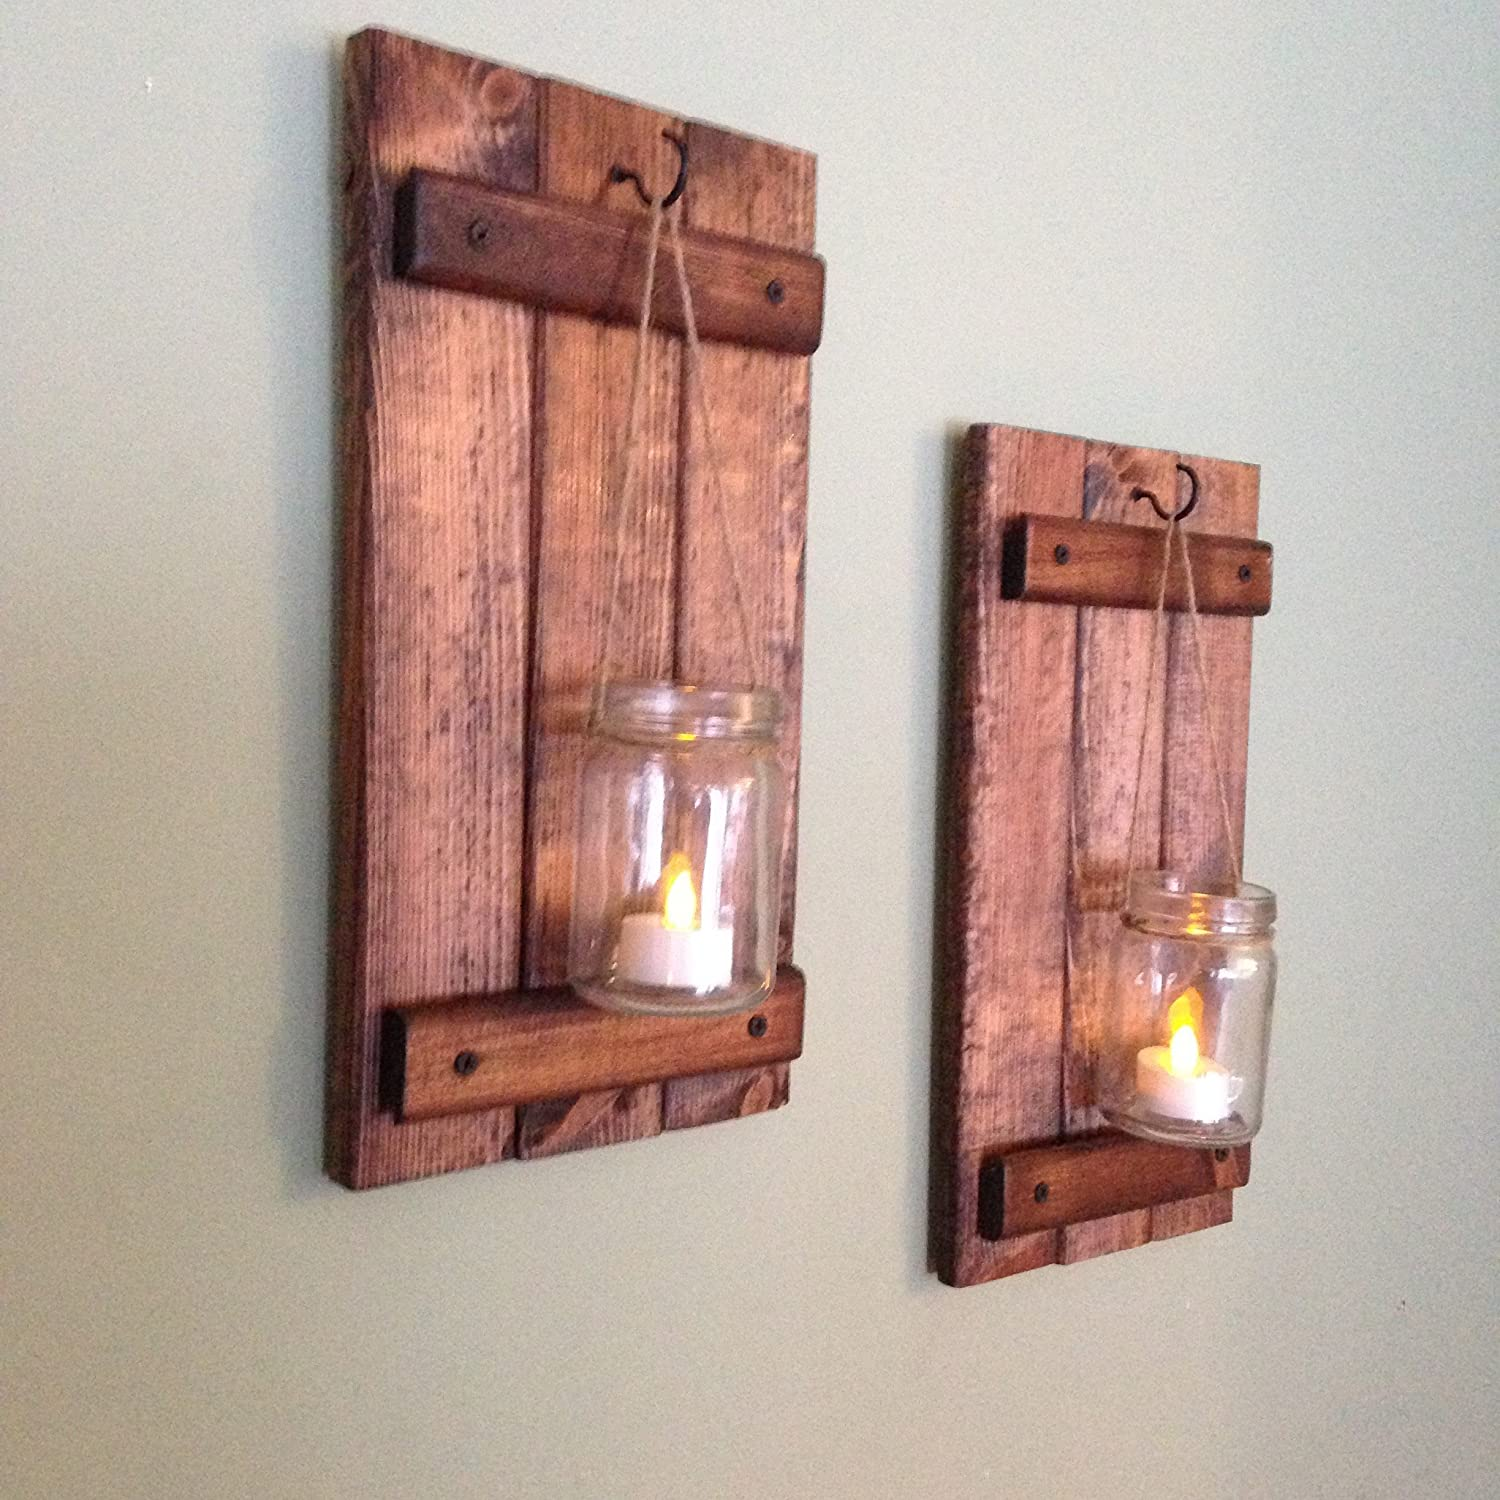 Amazon wall sconce rustic wall decor wood wall sconce amazon wall sconce rustic wall decor wood wall sconce rustic wall sconce candle holder set of two handmade amipublicfo Images